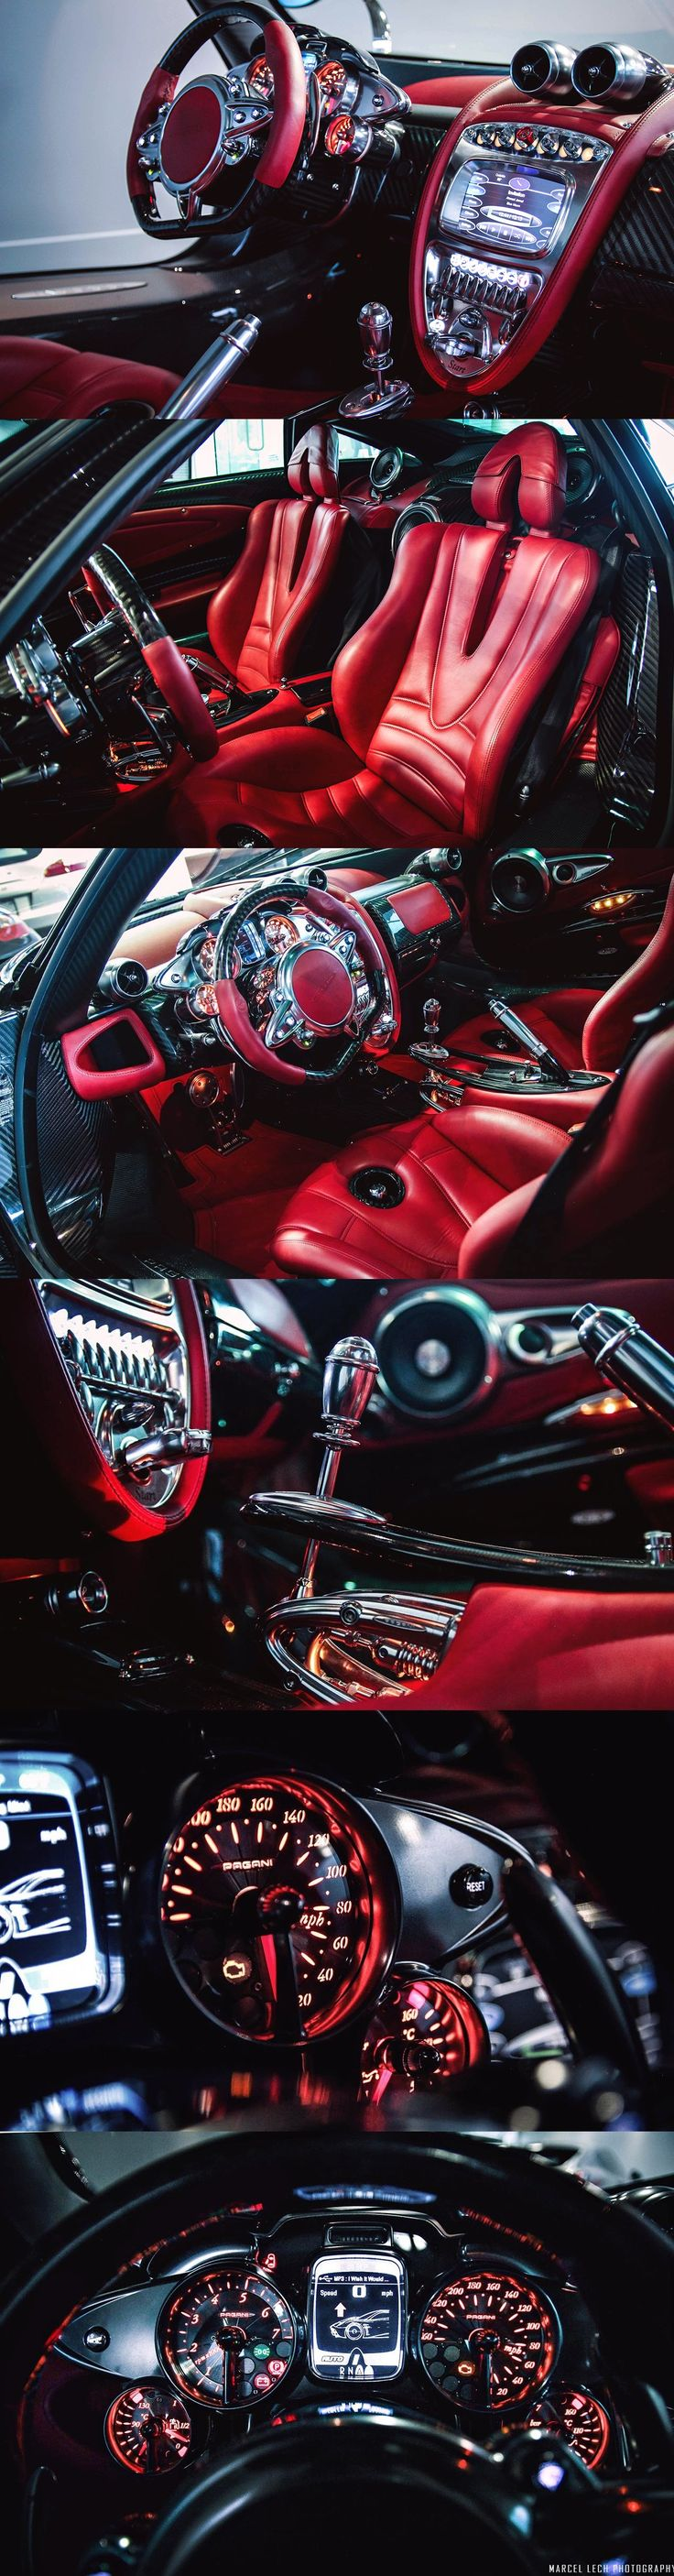 Pagani Huayra Interior https://www.youtube.com/watch?v=3Qbixj-lGqY  | Whether you're interested in restoring an old classic car or you just need to get your family's reliable transportation looking good after an accident, B & B Collision Corp in Royal Oak, MI is the company for you! Call (248) 543-2929 or visit our website www.bandbcollision.com for more information!